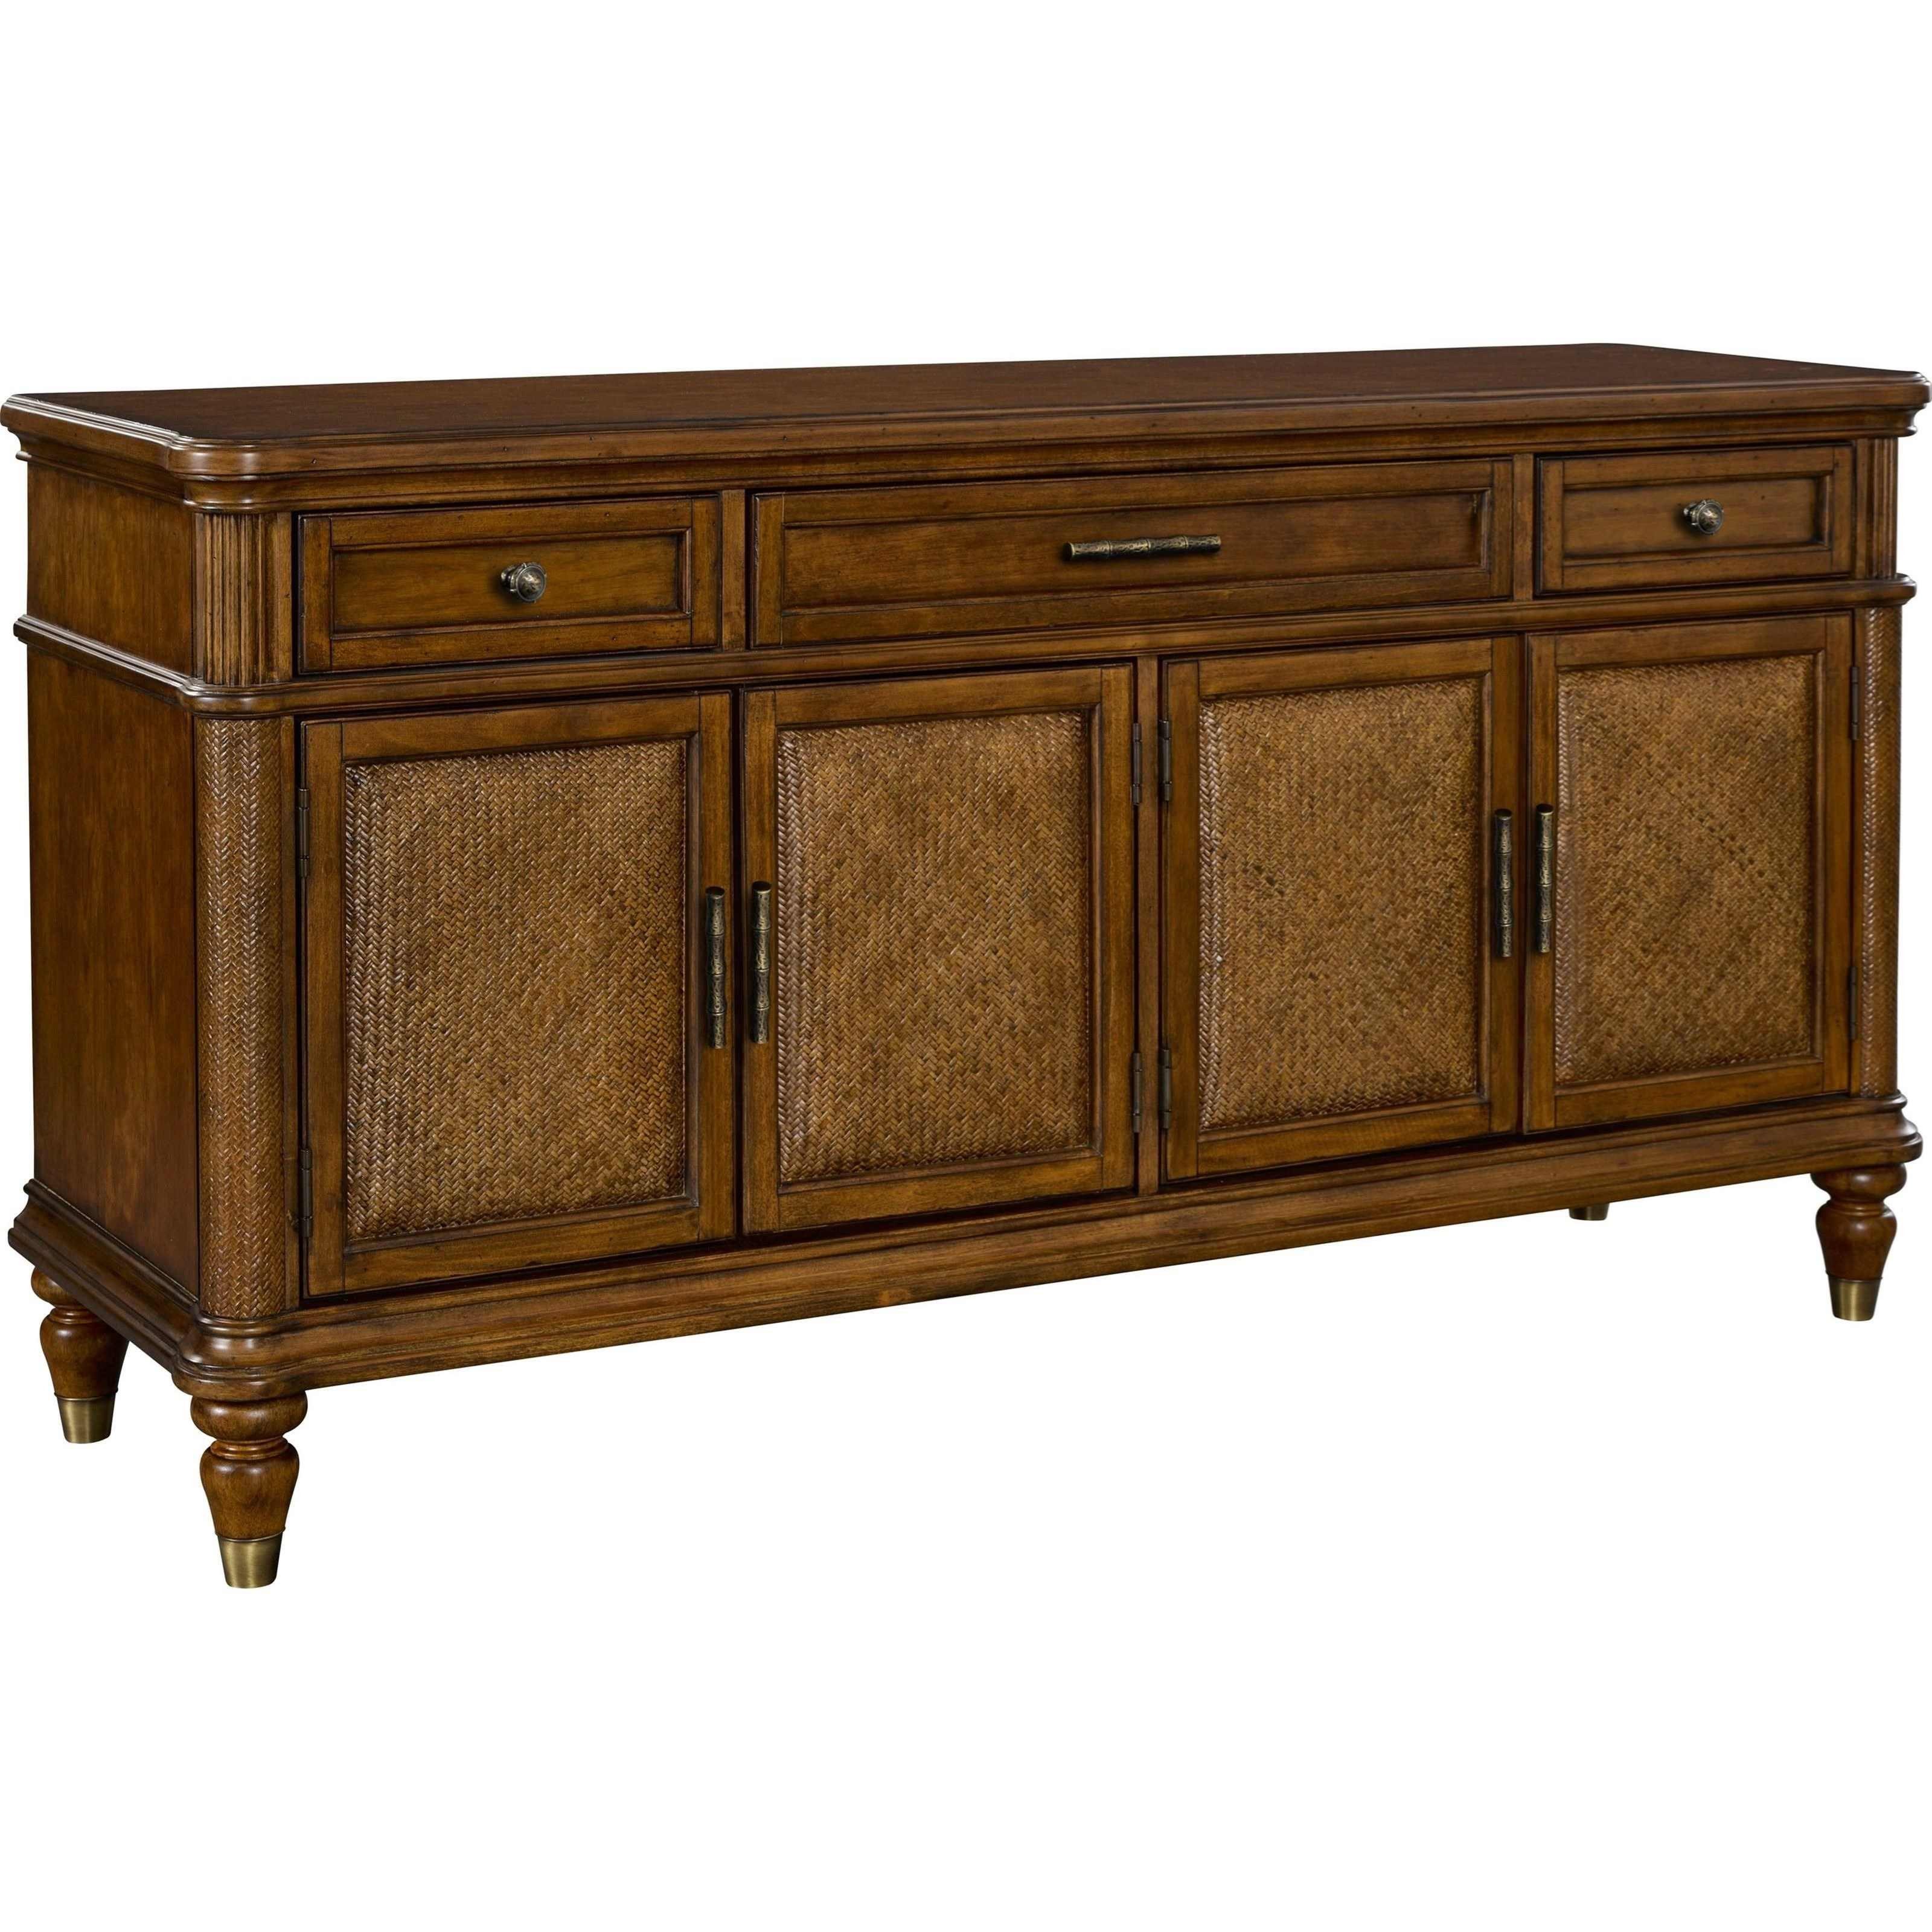 Broyhill Furniture Amalie Bay 4548 055 3 Drawer